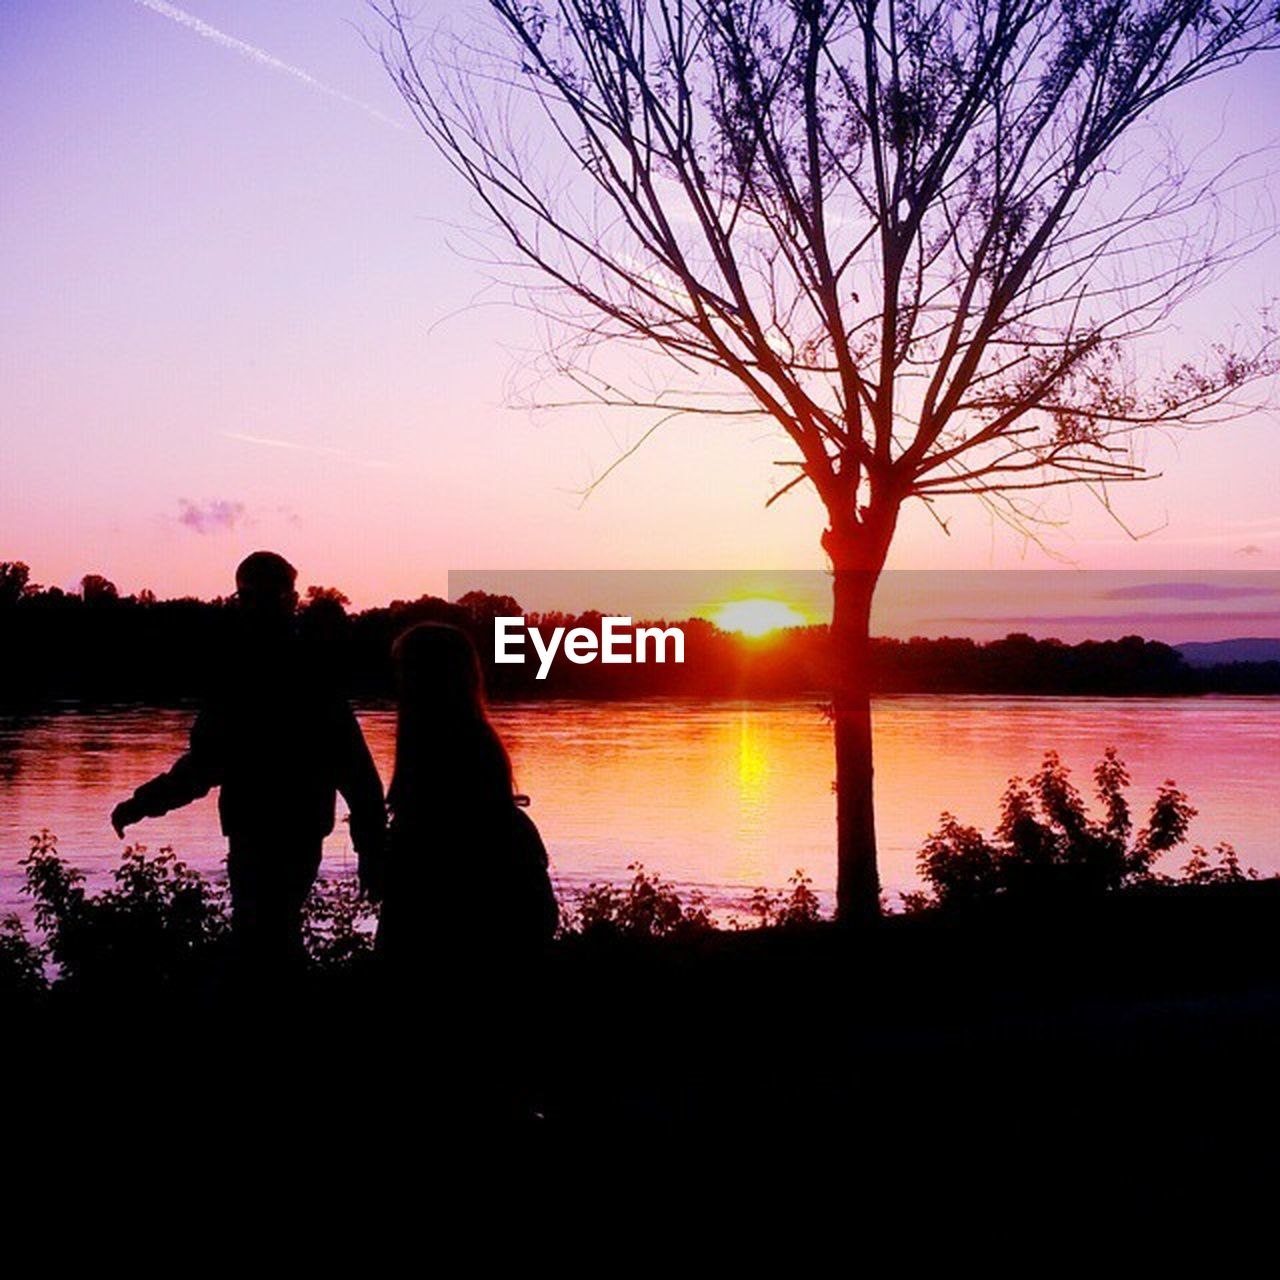 sunset, silhouette, two people, real people, togetherness, nature, leisure activity, women, beauty in nature, lifestyles, water, lake, tree, love, reflection, men, couple - relationship, bonding, sitting, sky, standing, scenics, outdoors, bare tree, adult, people, adults only